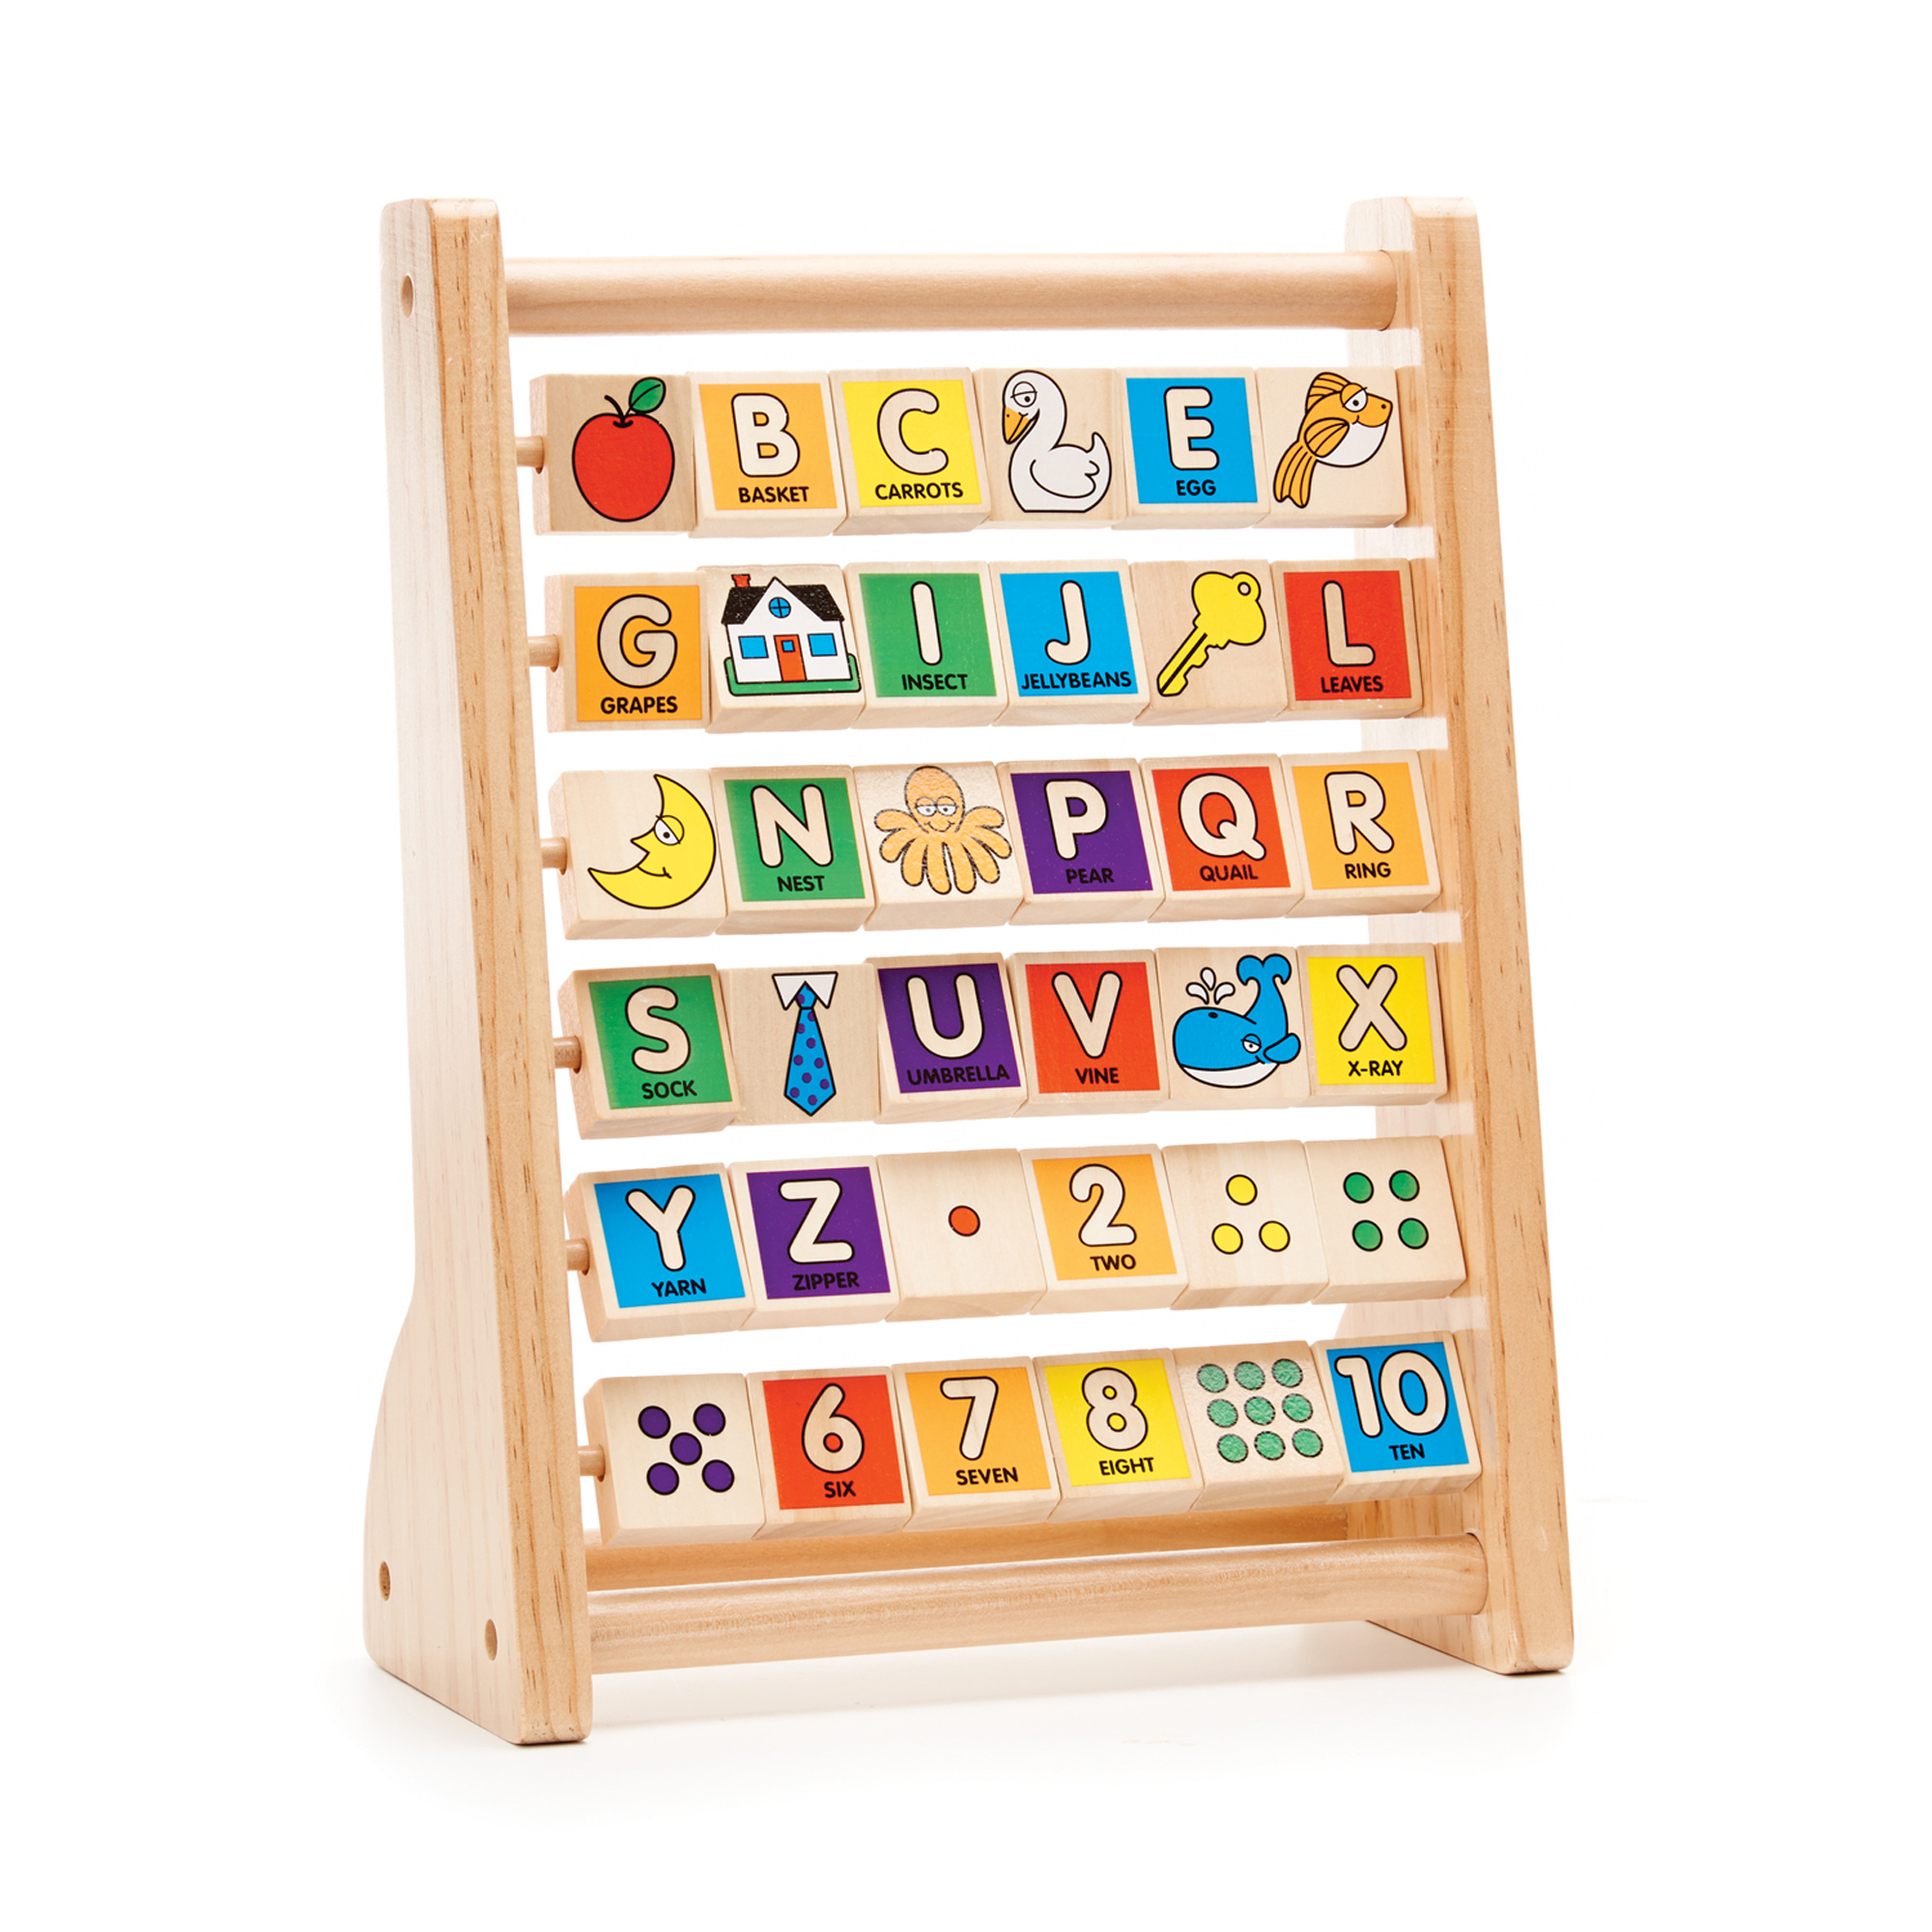 This timeless toy, featuring 36 colorful double-sided tiles, is an early-learning essential! The wooden frame includes all the letters of the alphabet as well as the numbers 1 through 10 on one side and whimsical illustrations including an apple, fish, key, moon, grapes, tie, and house on the other. The spinning tiles encourage children to play, explore, and learn. A tremendous value that will last for years!